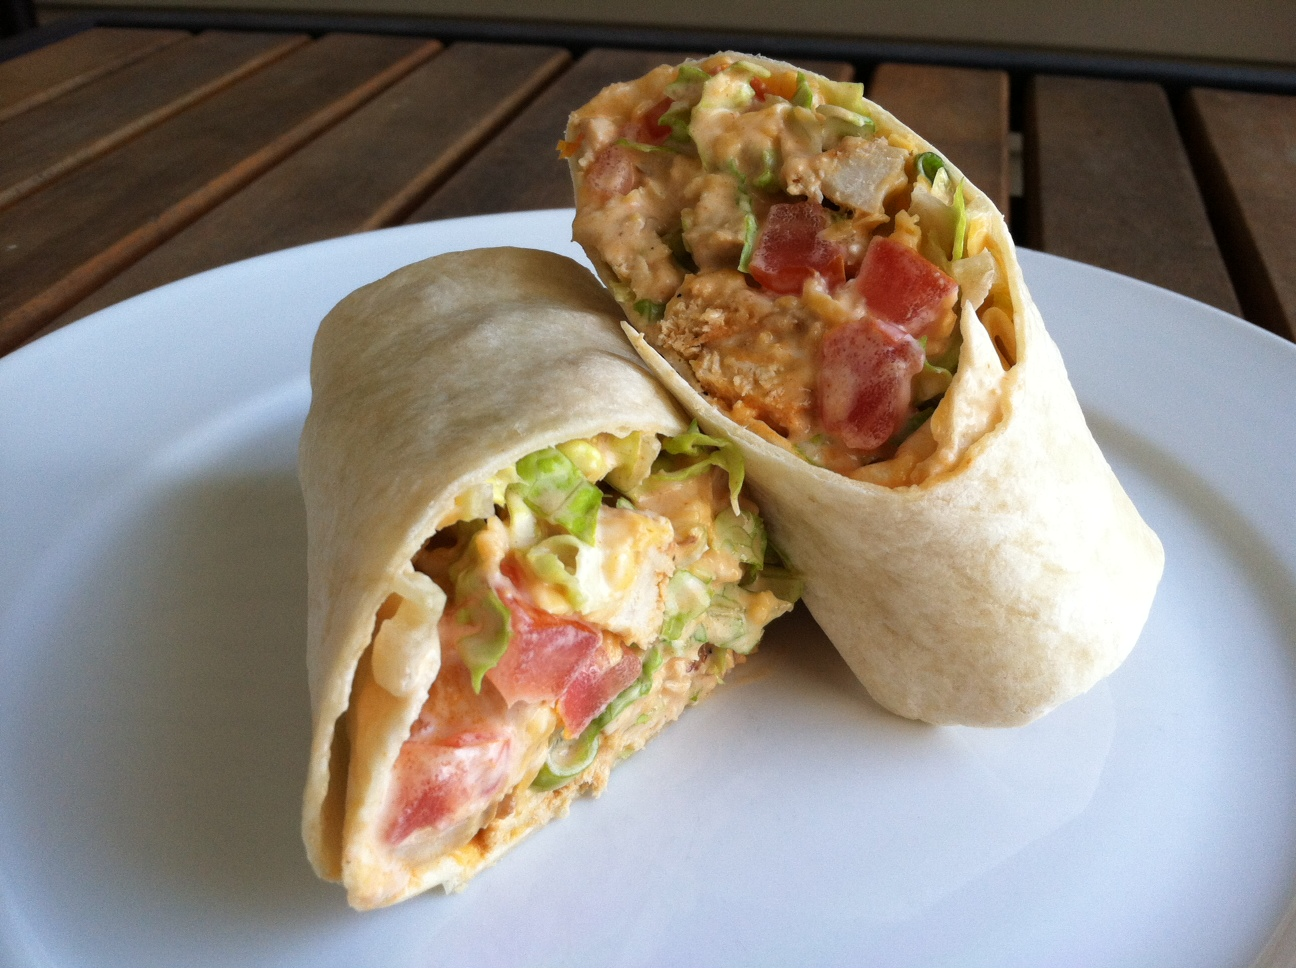 Taste of Home Cooking: Buffalo Chicken Wraps